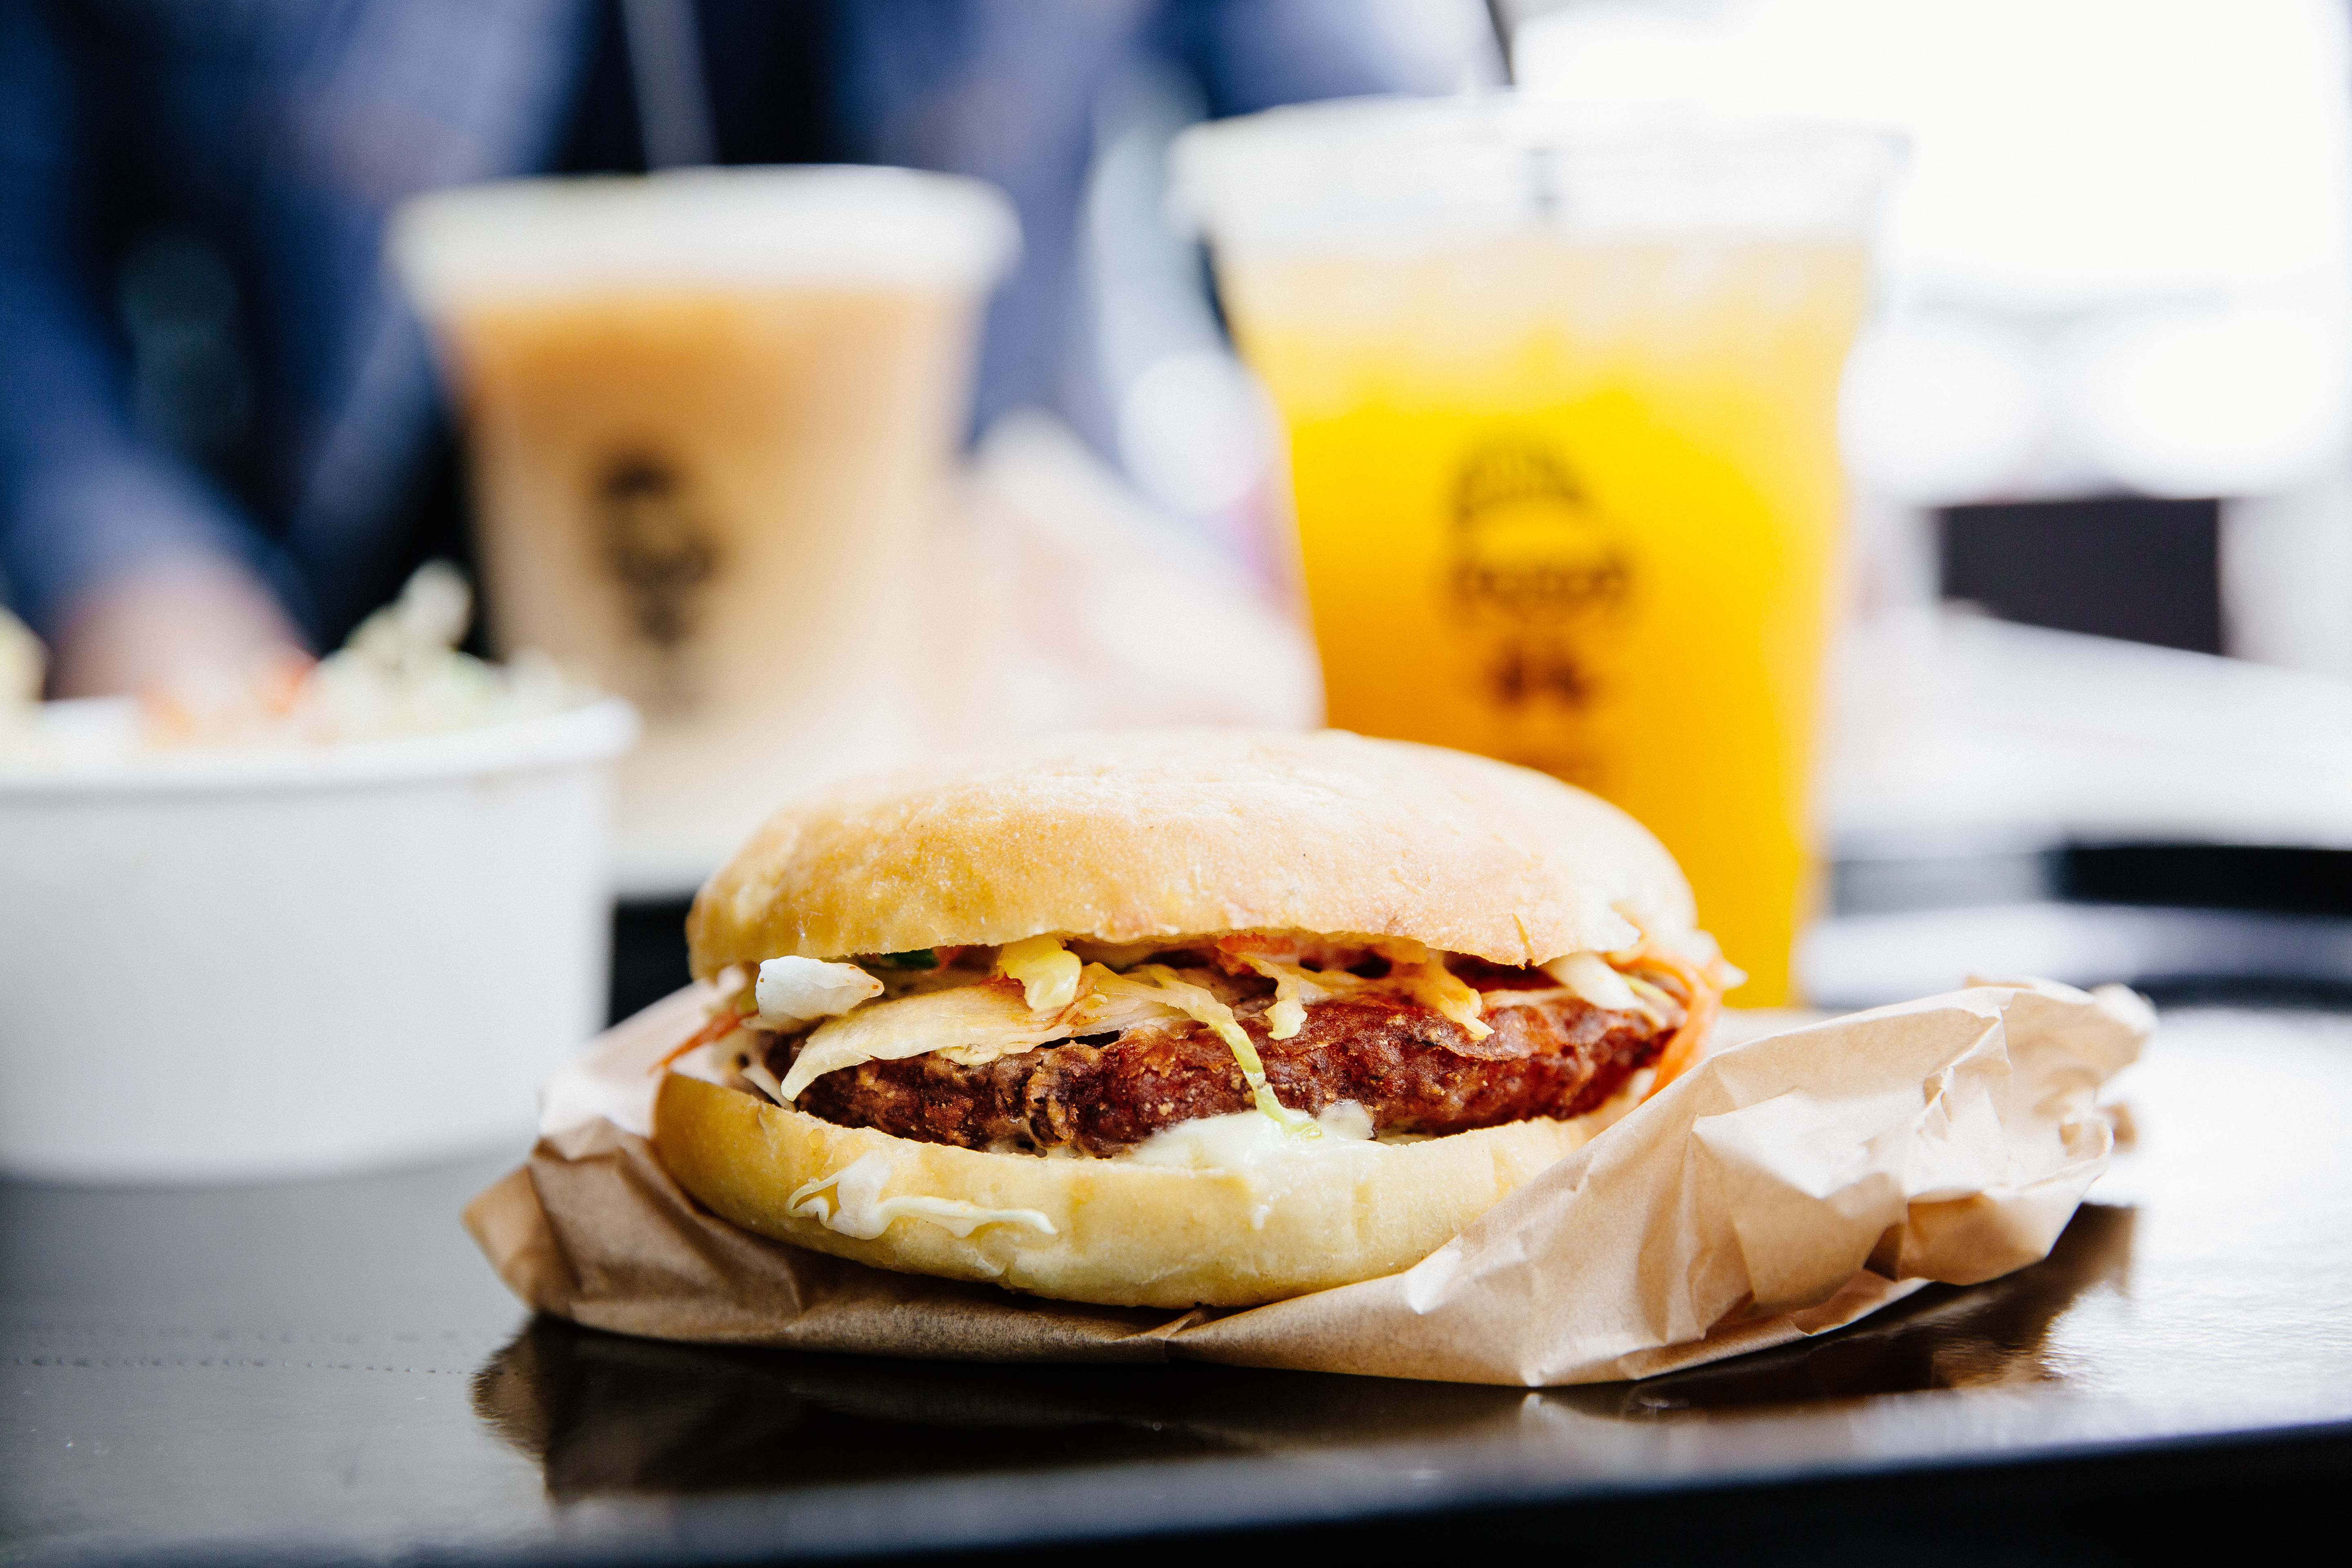 The fried chicken burg and agua fresca at LocoL. Photo by Audrey Ma, courtesy of LocoL.